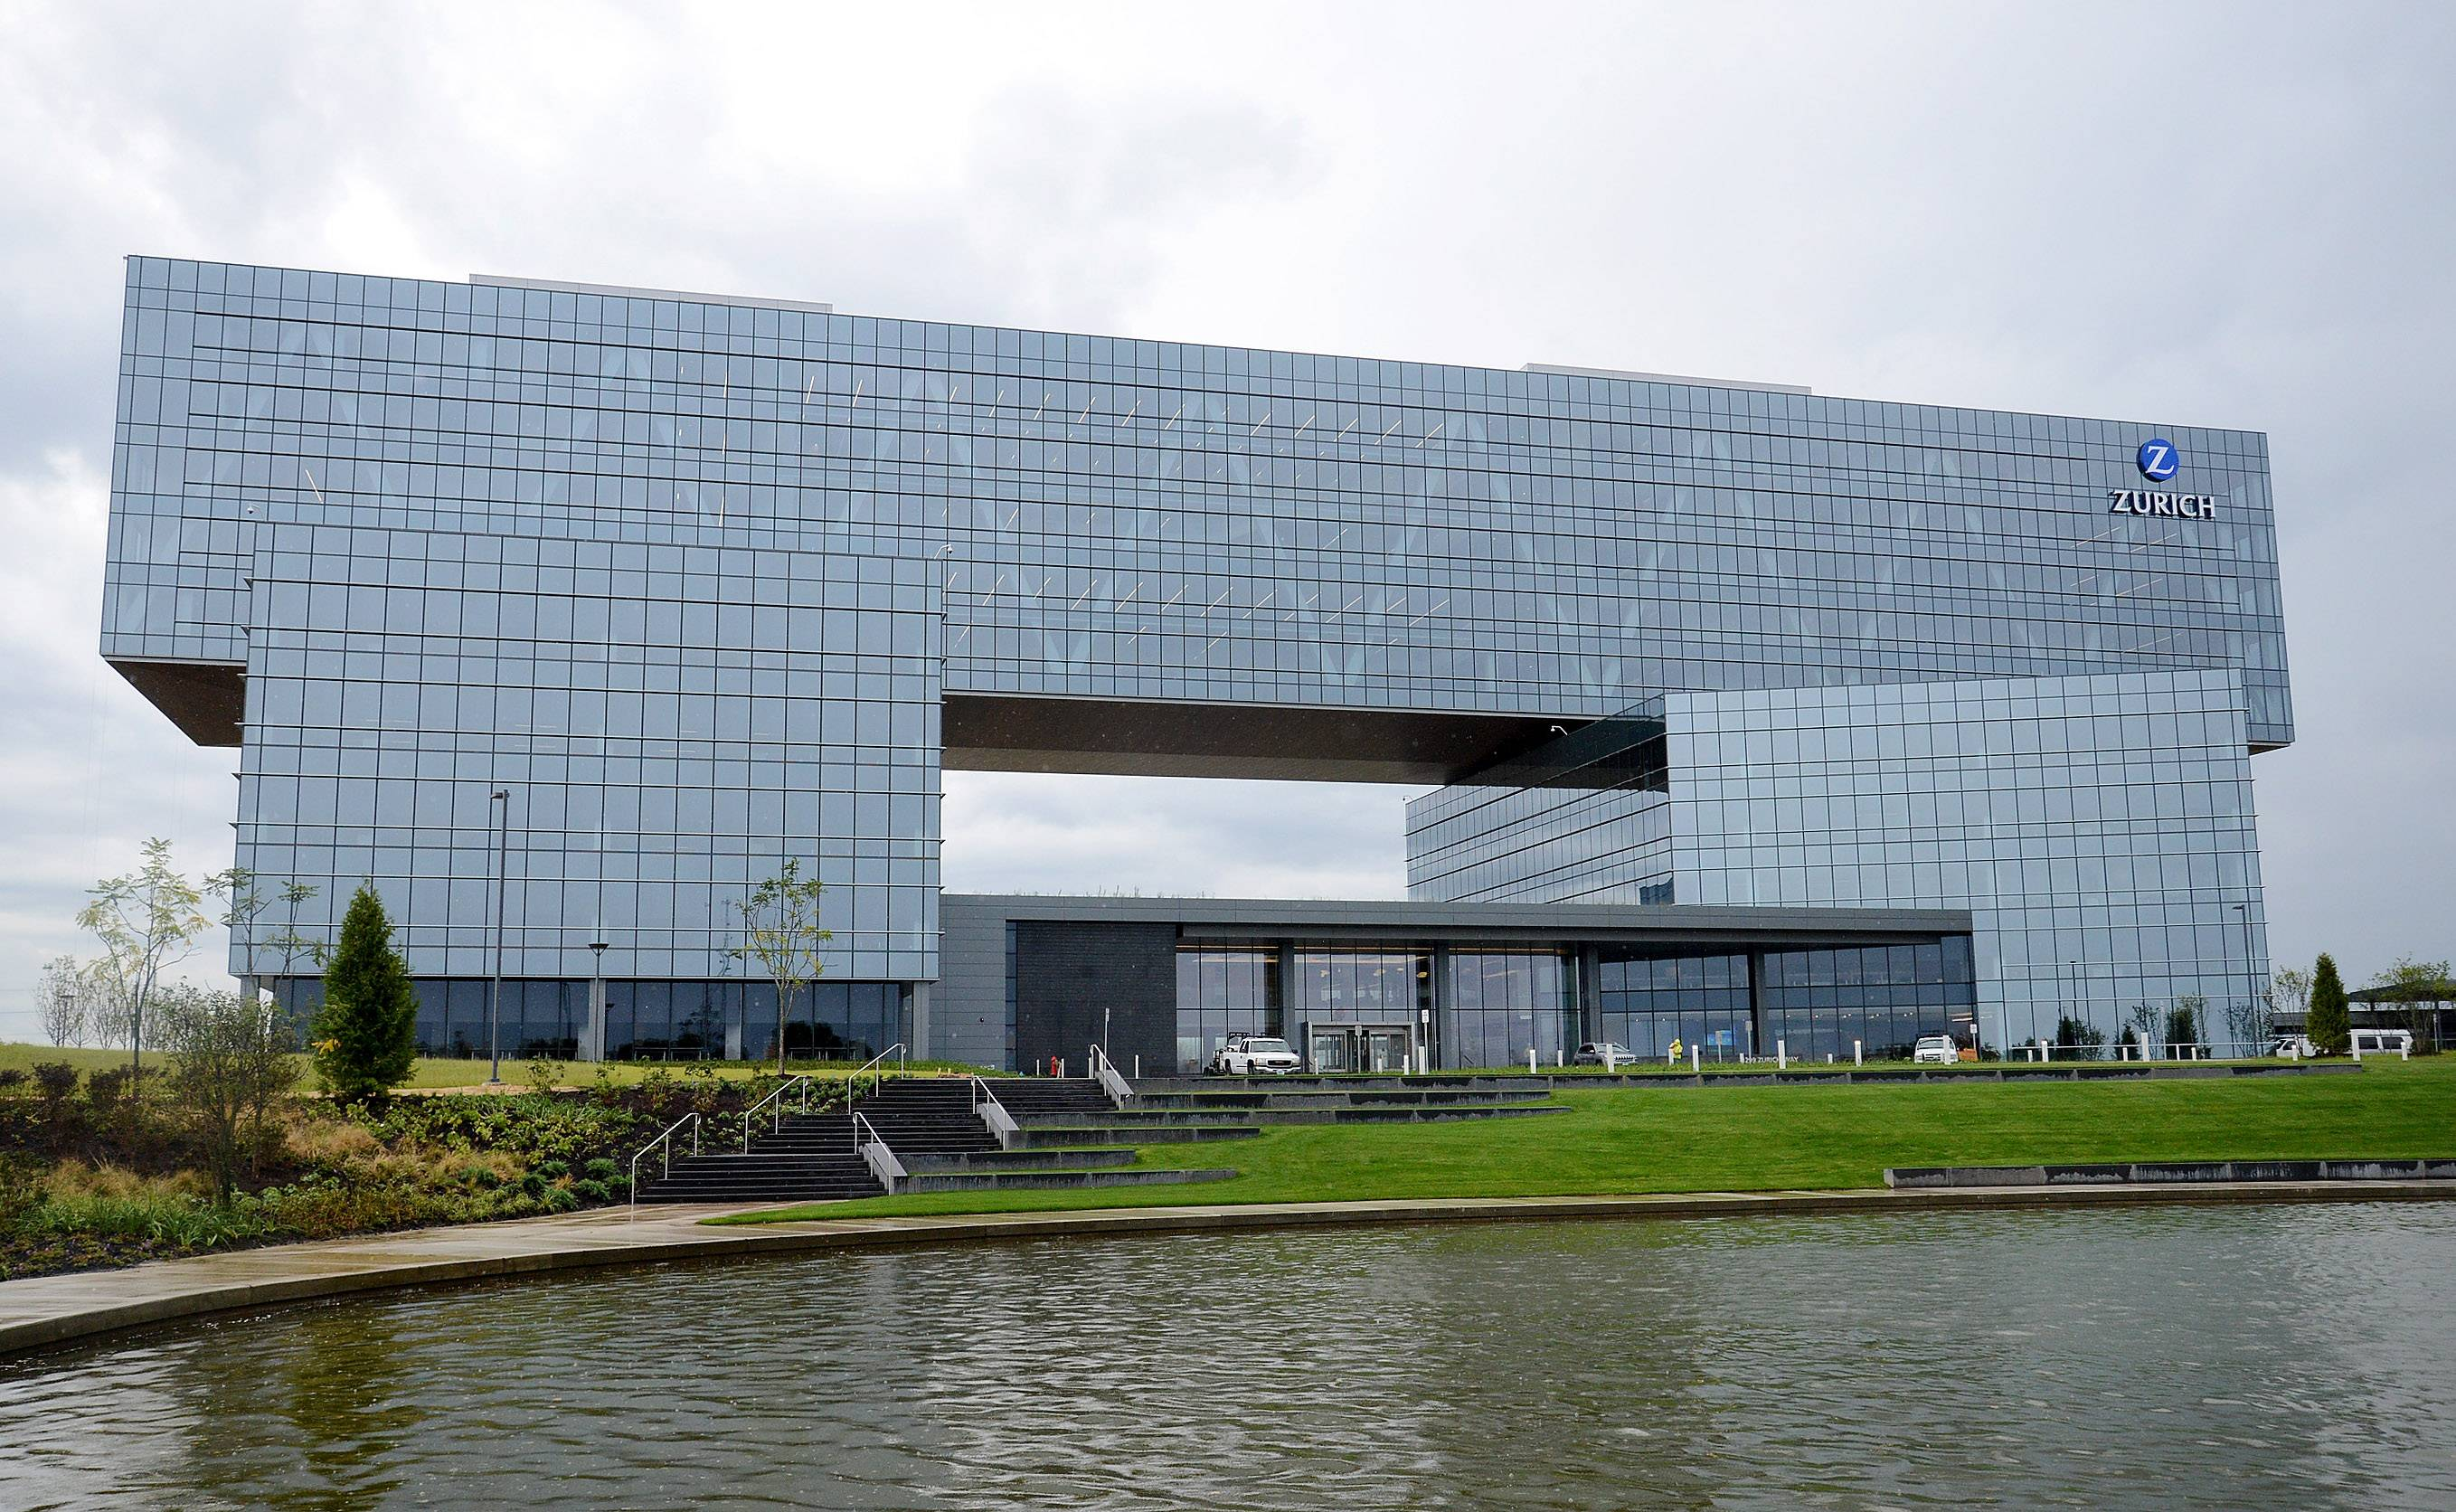 The new Zurich North America headquarters building in Schaumburg opened along the widened Jane Addams Memorial Tollway in the fall of 2016. The Illinois Chamber of Commerce has recognized both among the year's outstanding economic development projects.